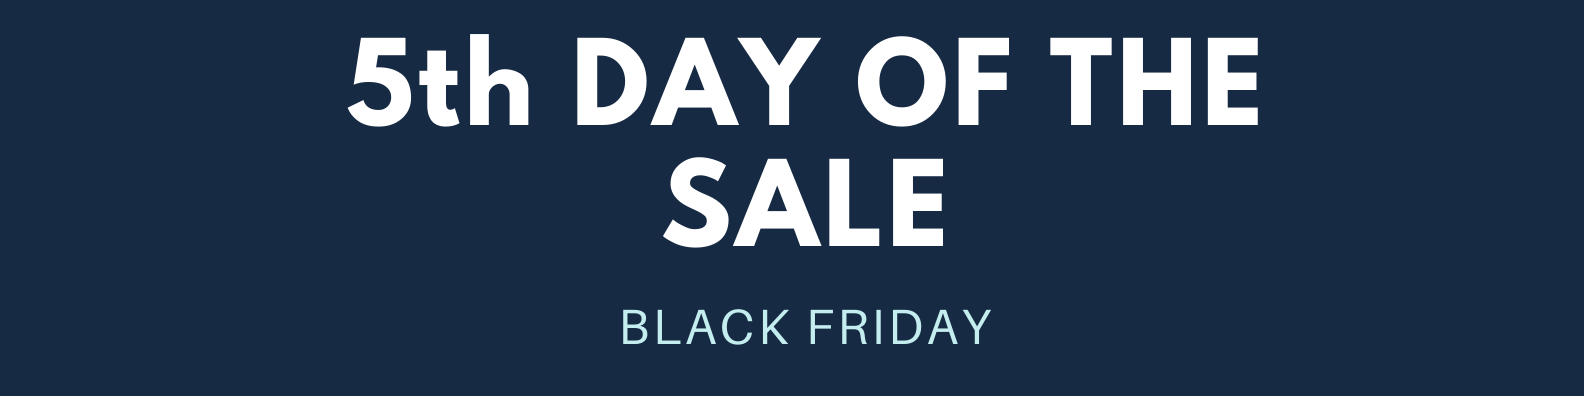 2021 Black Friday Marketing Strategy for more sales